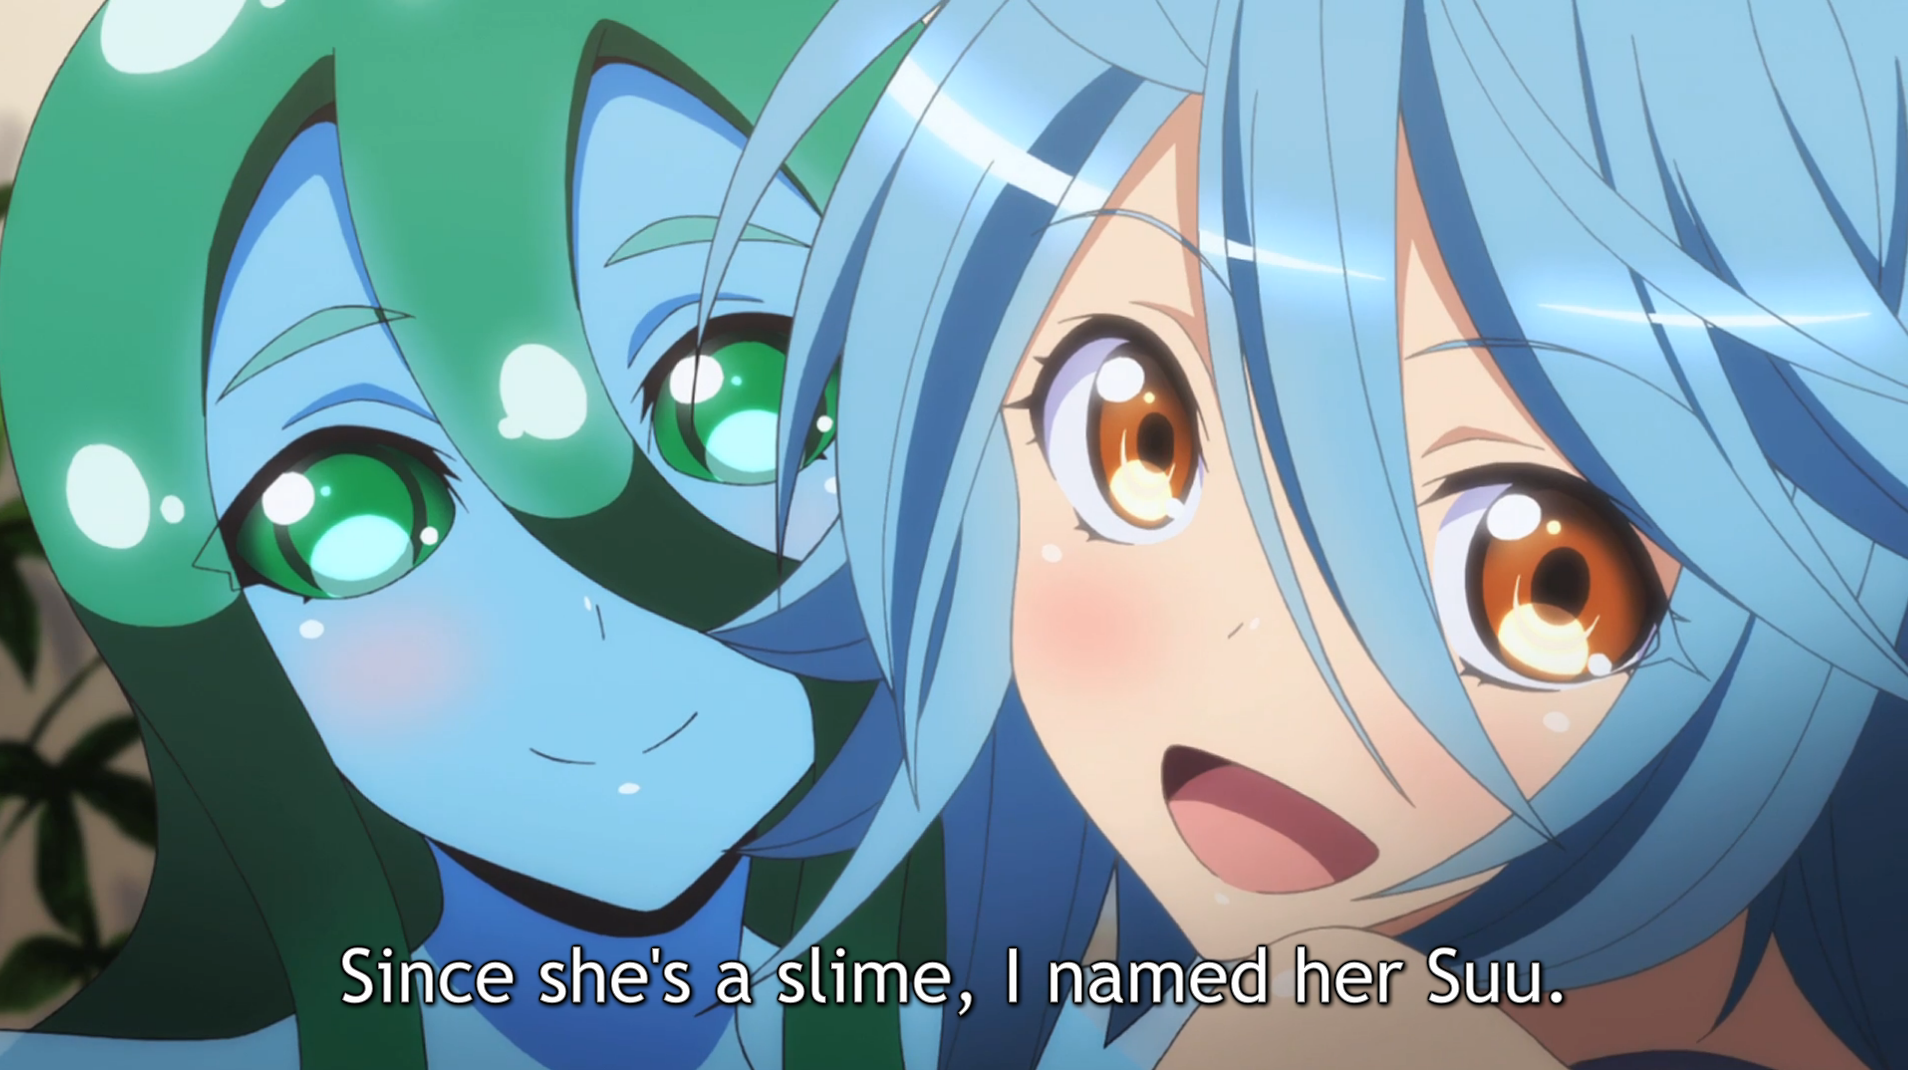 Suu the Slime